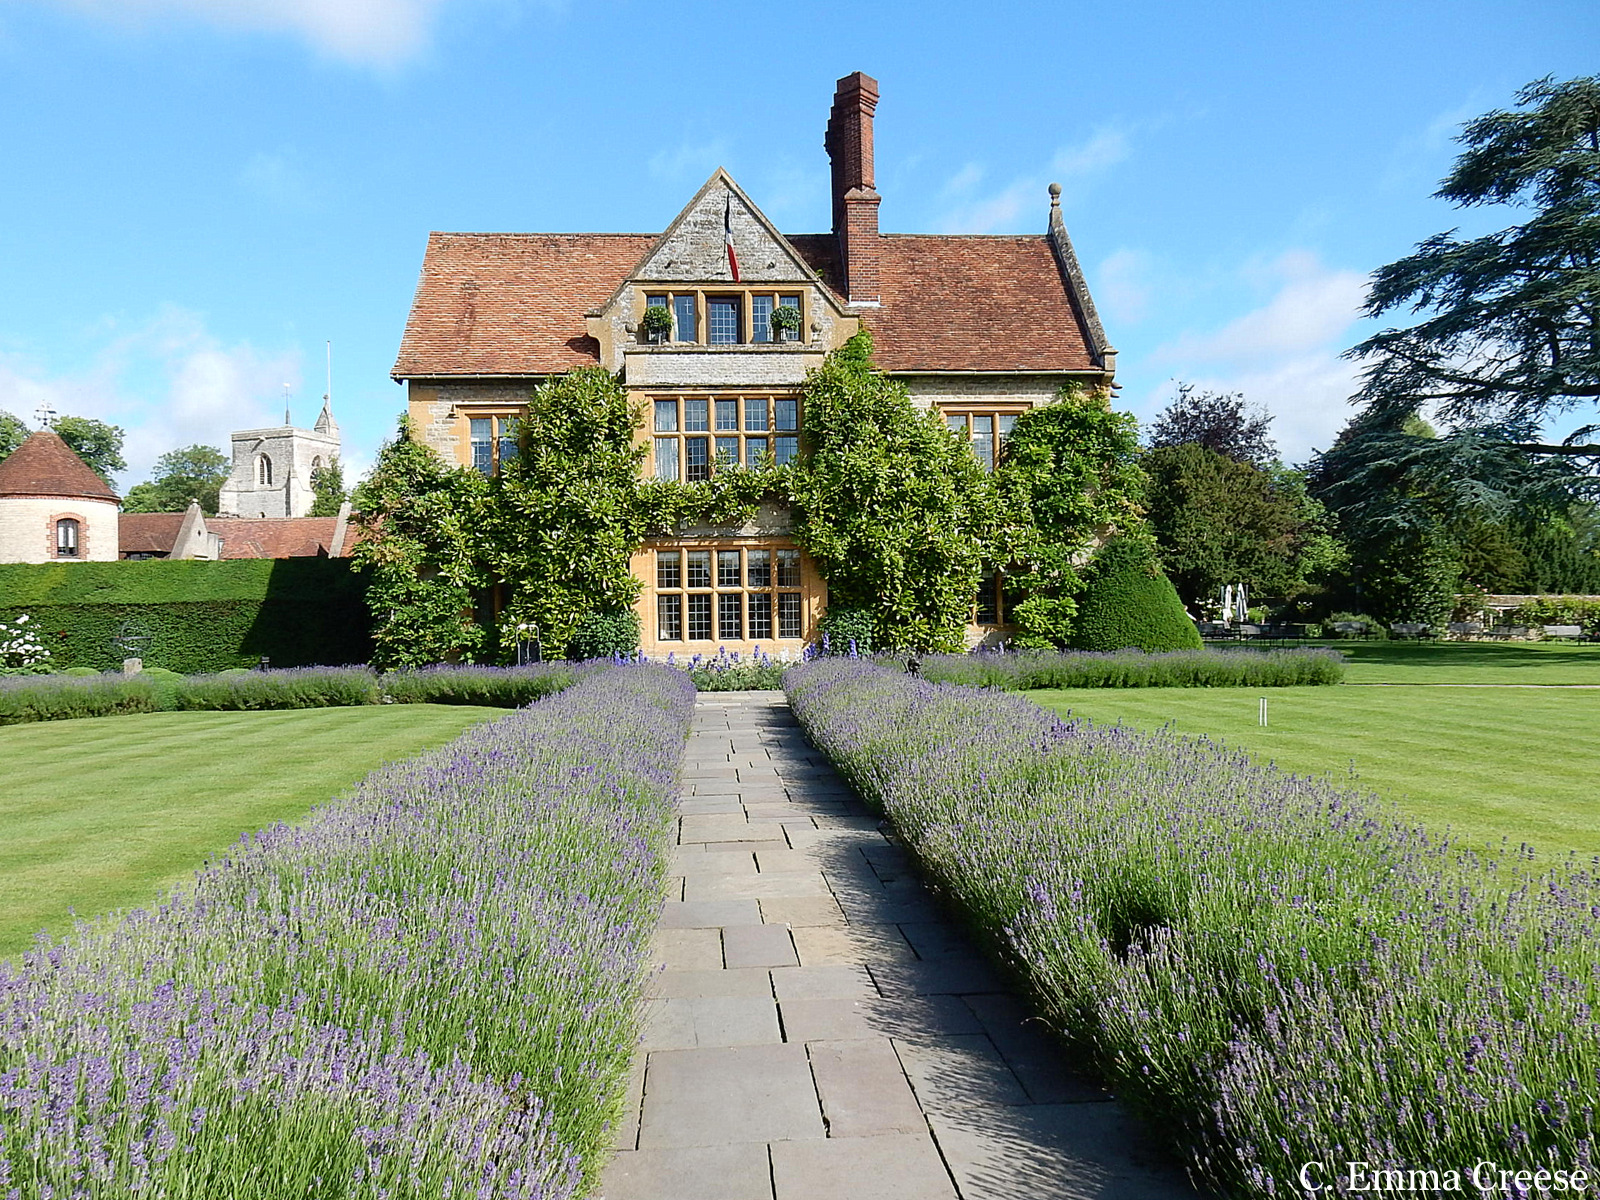 A 2 Michelin starred lunch at Belmond Le Manoir aux Quat'Saisons Adventures of a London Kiwi